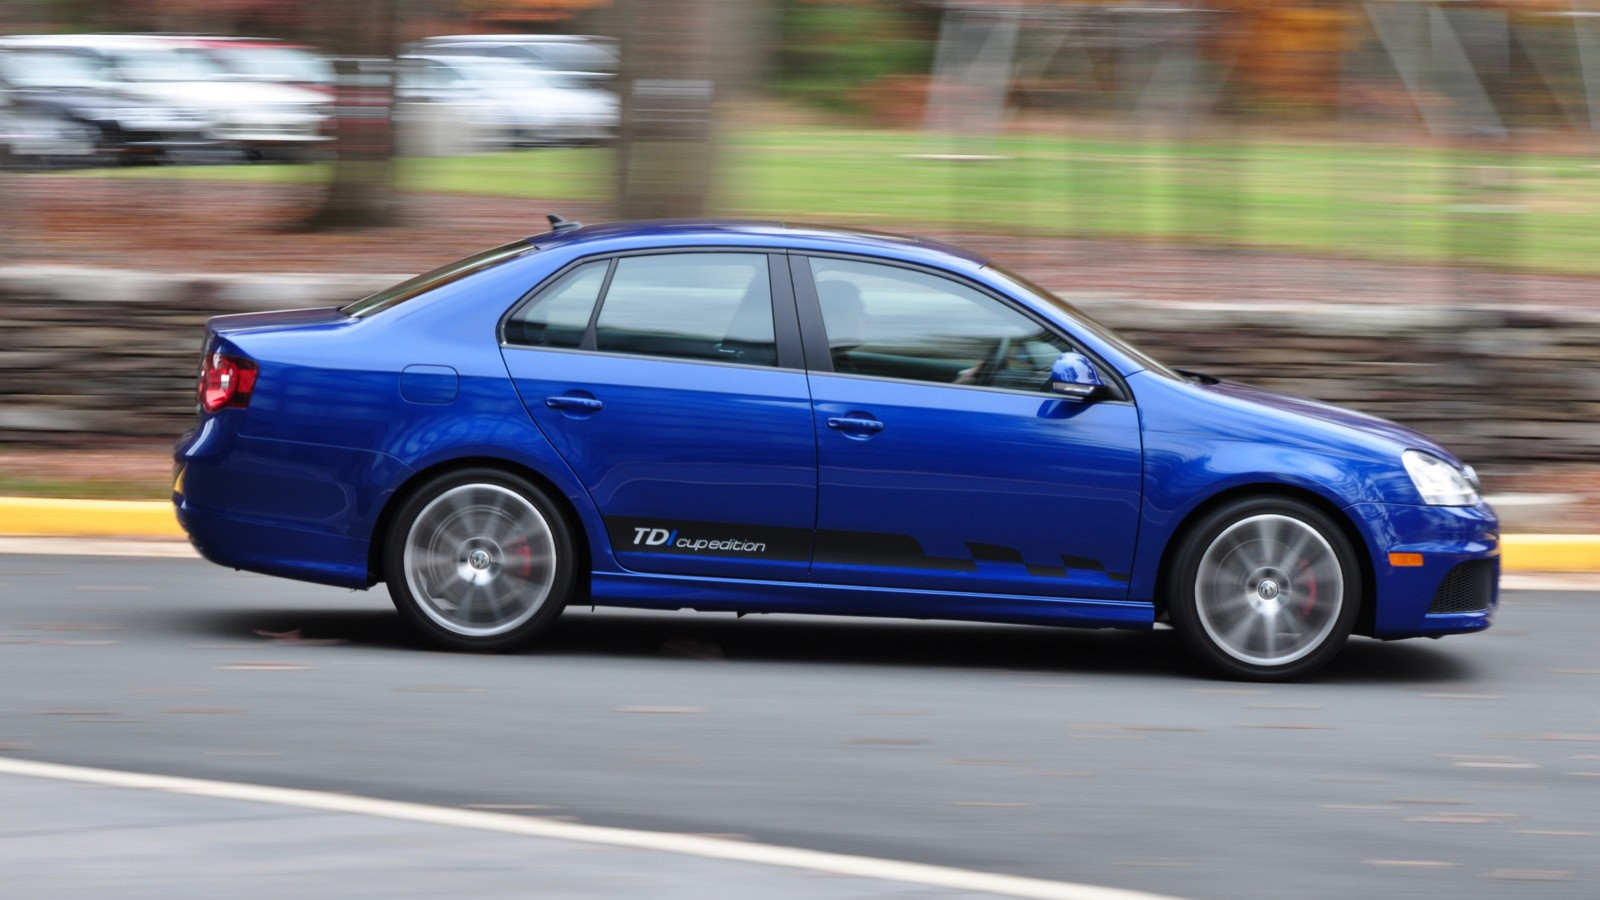 Jetta TDI - Green Car Photos, News, Reviews, and Insights - Green